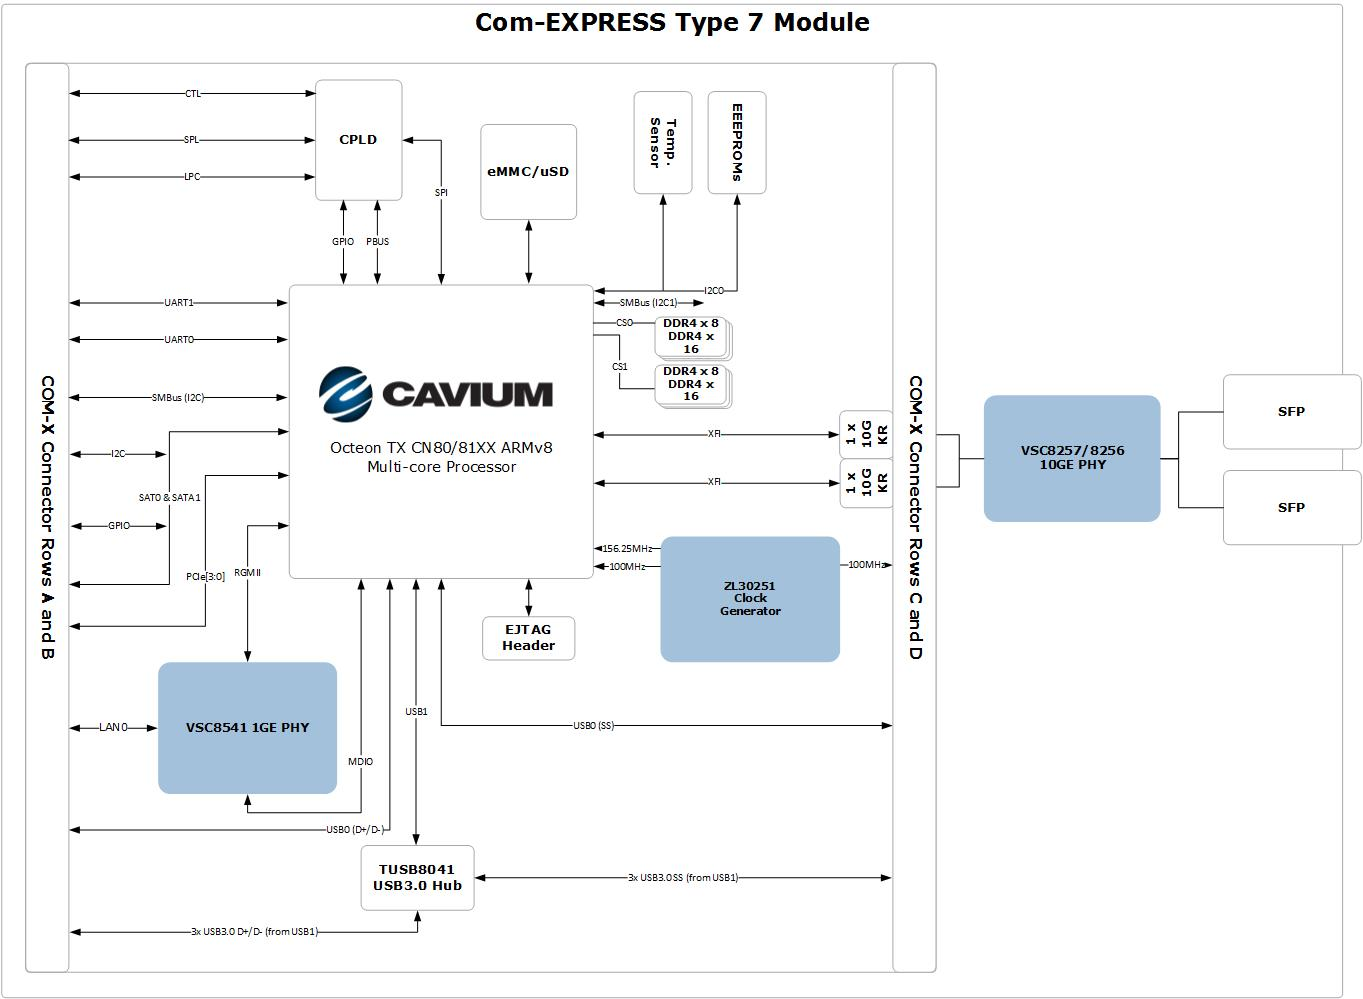 COM-Express Type 7 Module Ecosystem Reference Design - Microsemi ICs for Cavium OCTEON TX™ CN80/81XX